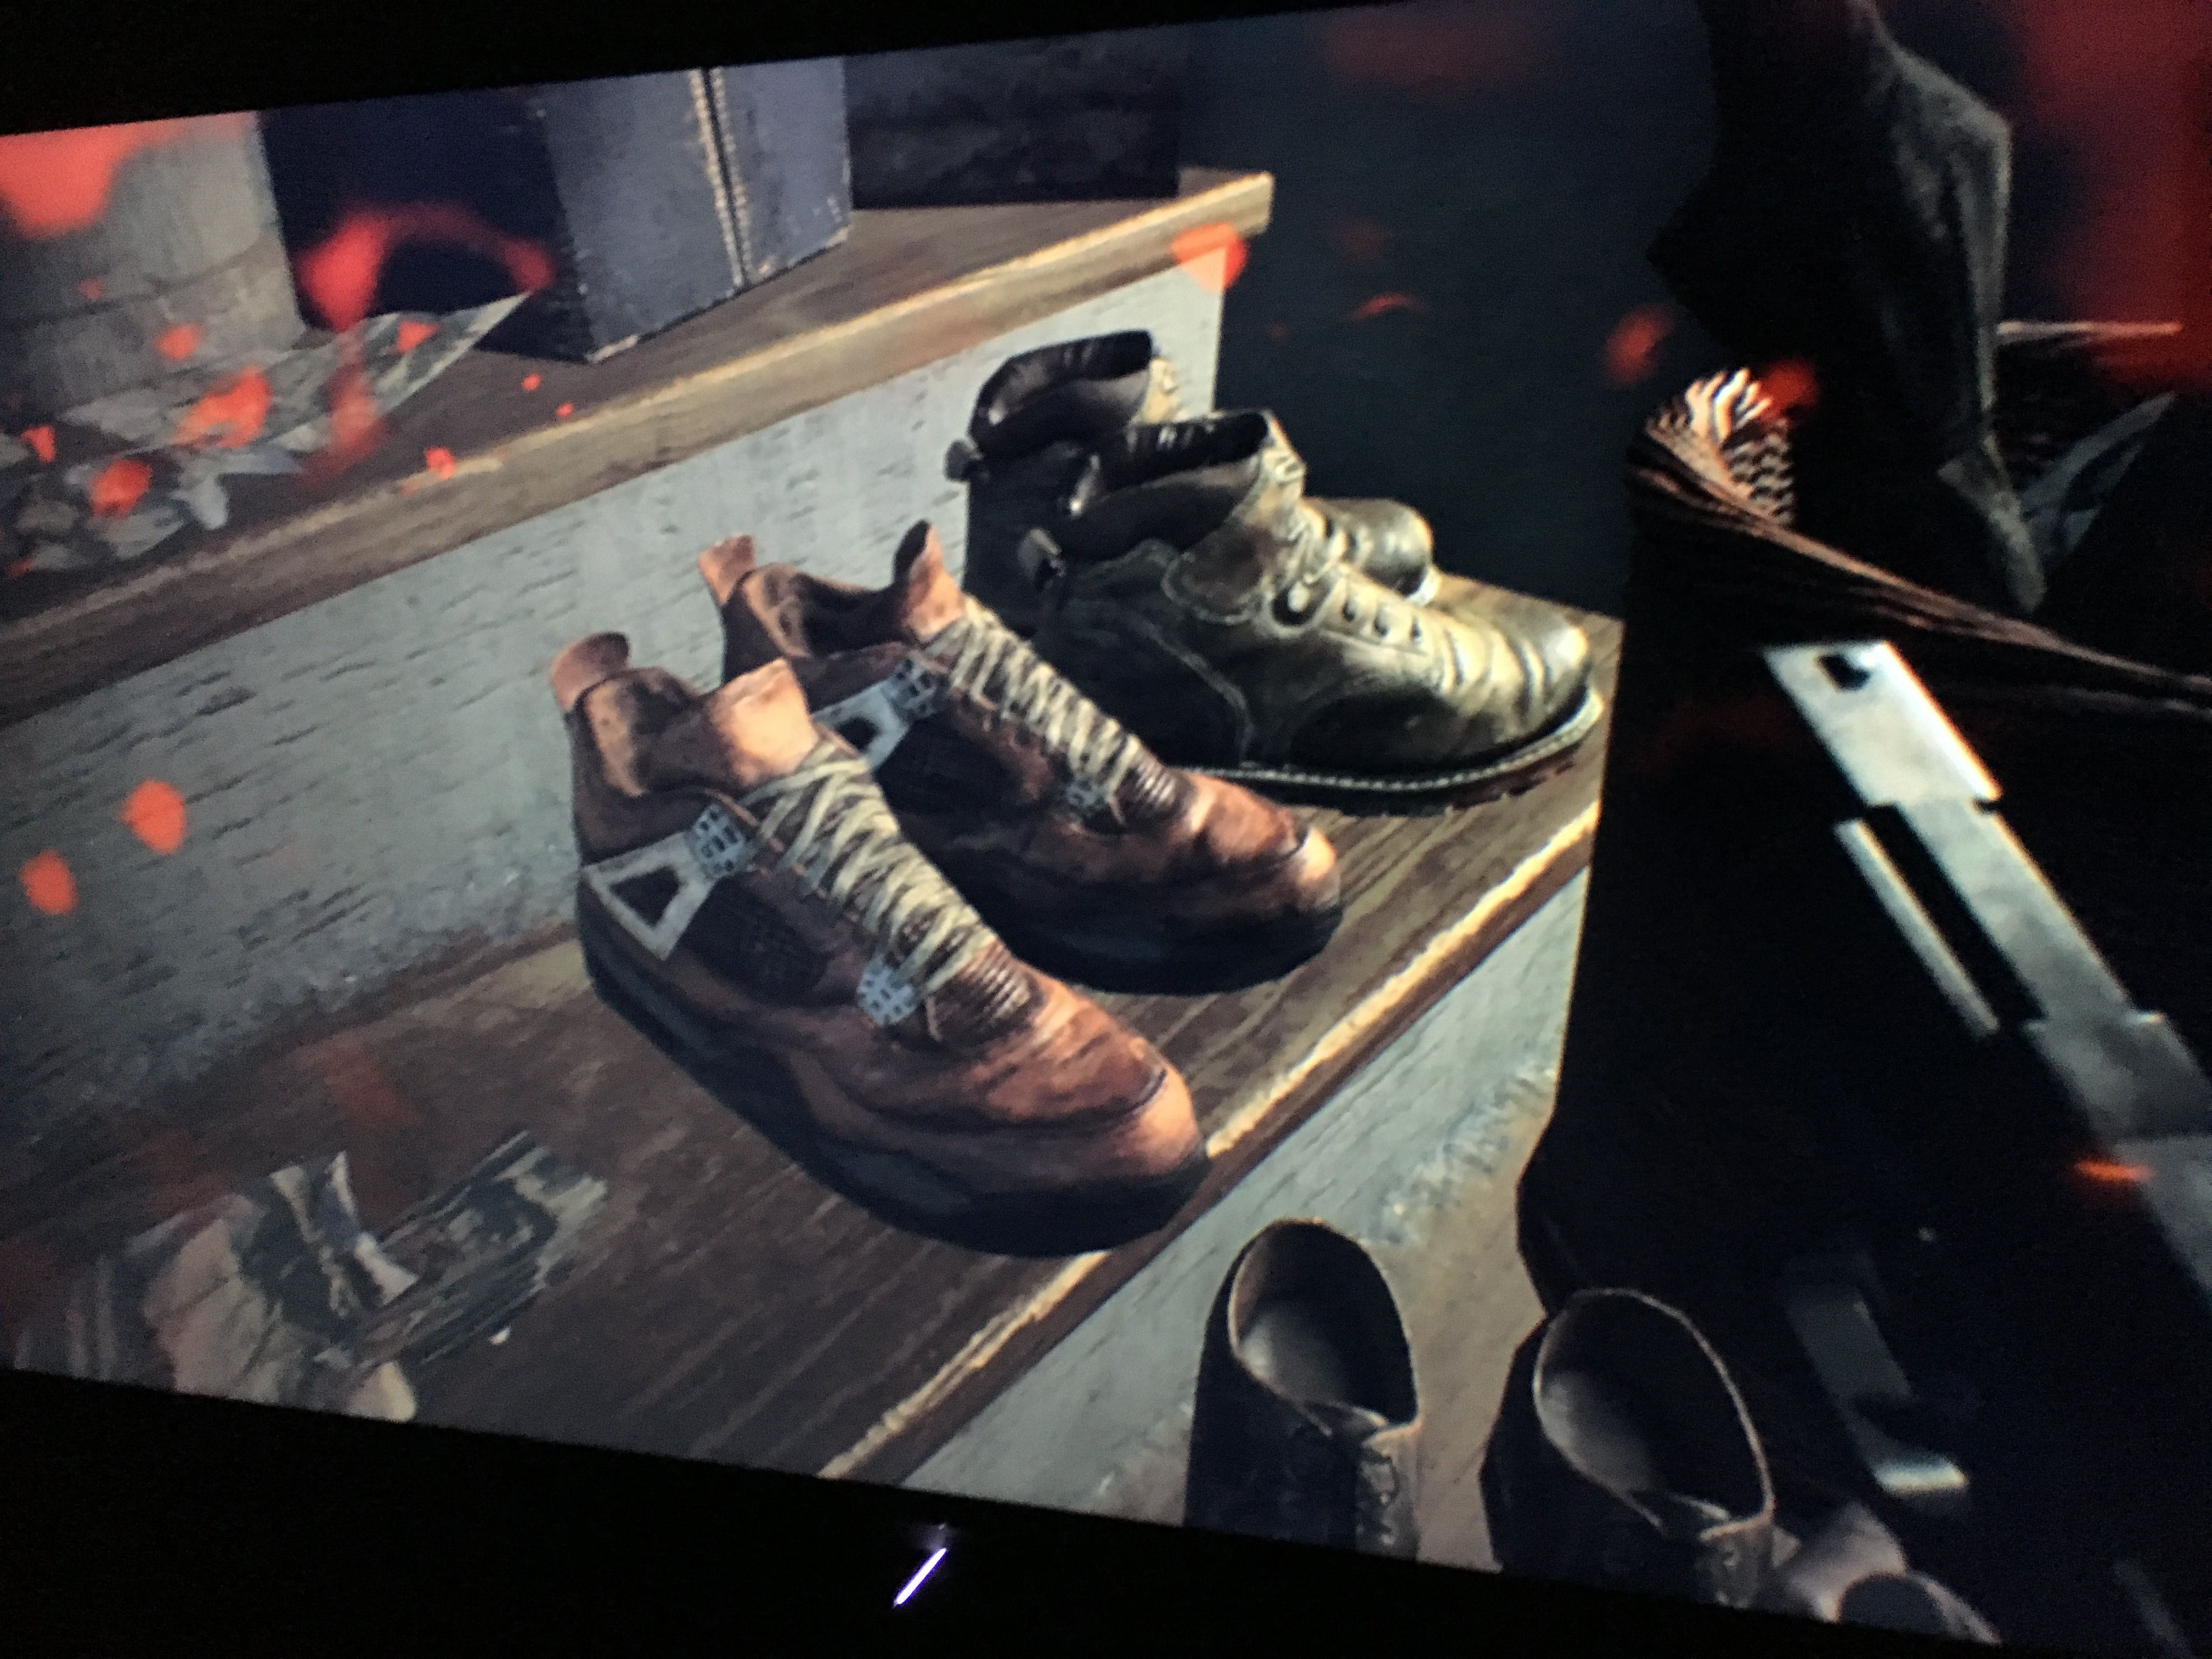 Evil 7Nike Sneakers Heat Some Resident Found While Playing gbf7yYv6